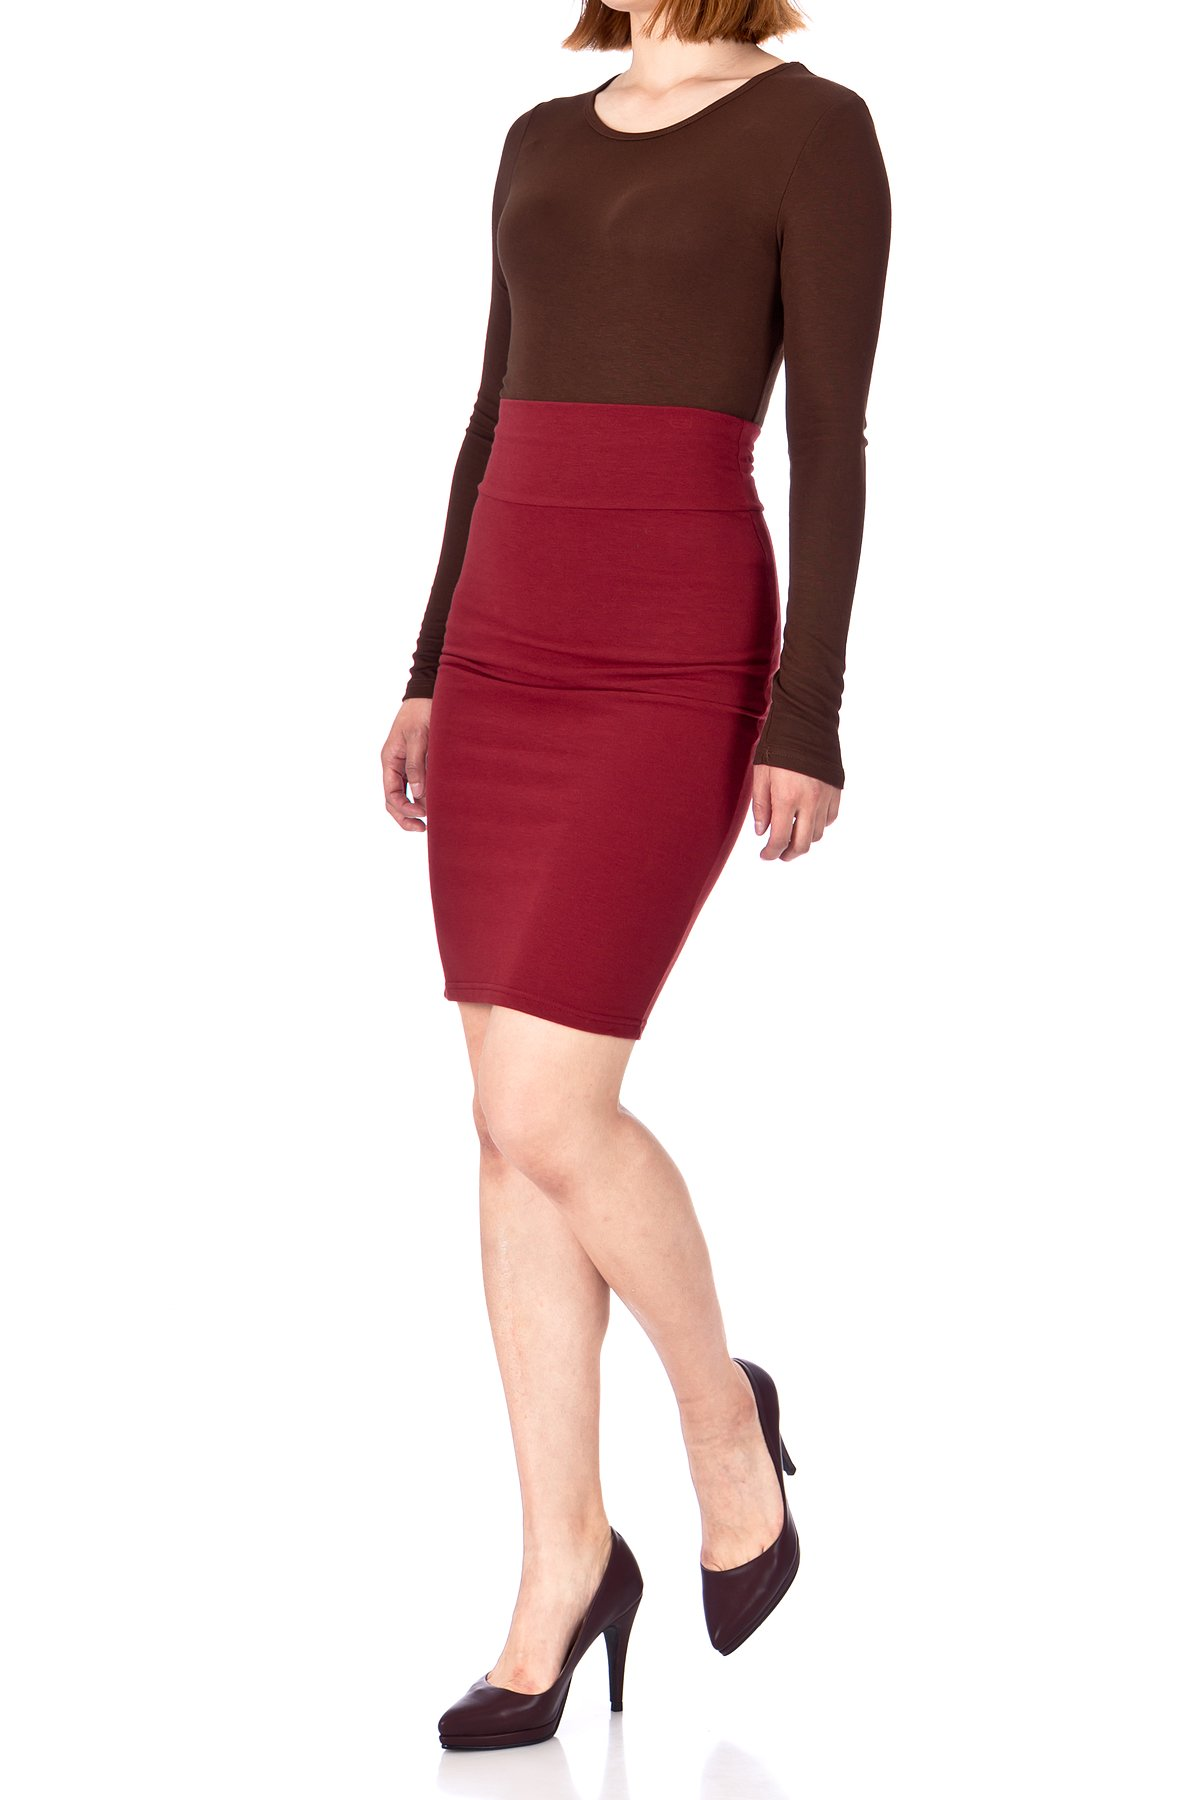 Every Occasion Stretch Pull on Wide High Waist Bodycon Pencil Knee Length Midi Skirt Burgundy 01